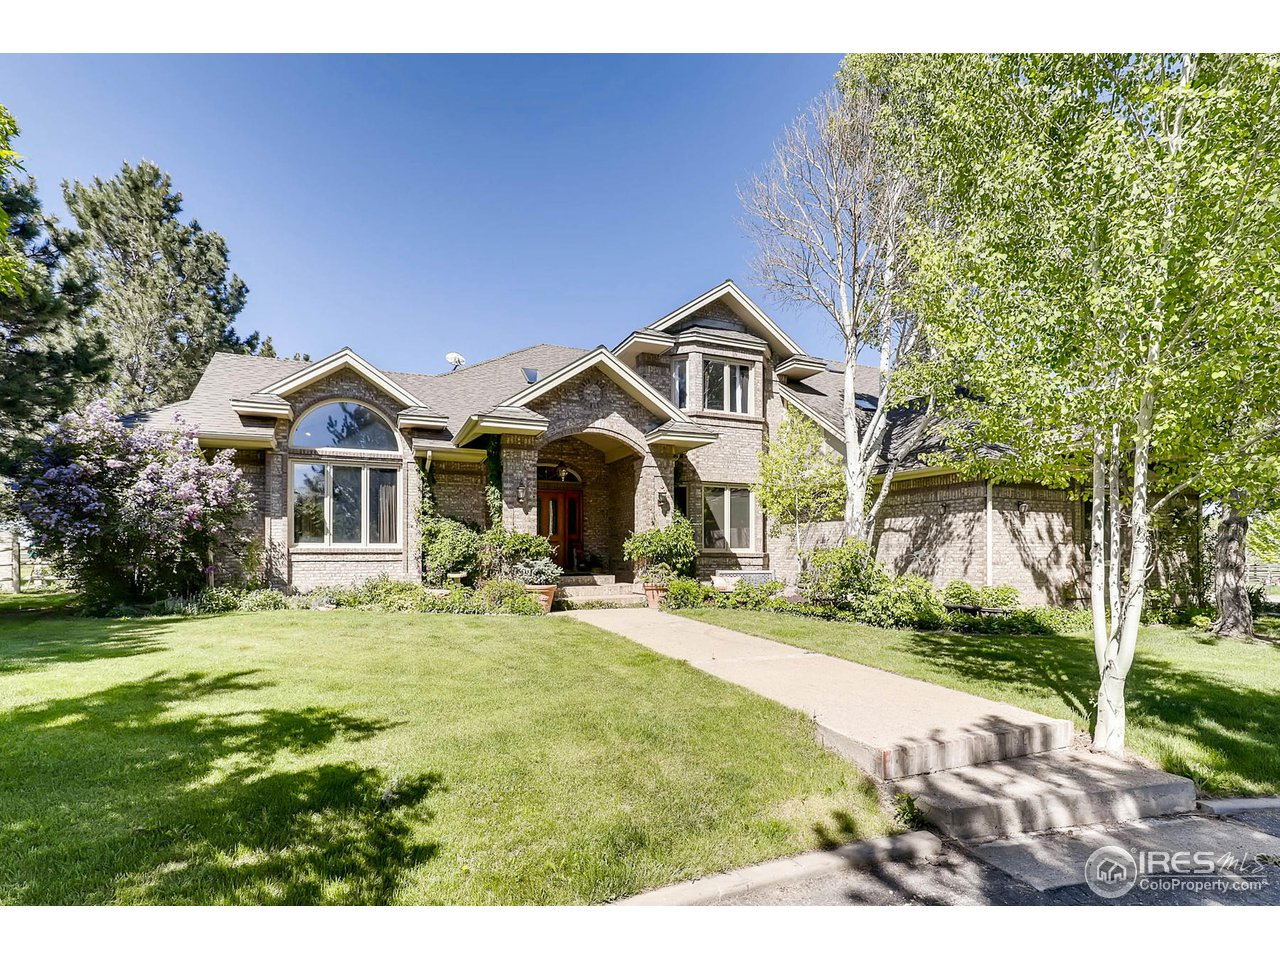 7289 Coyote Trail, Longmont CO 80503